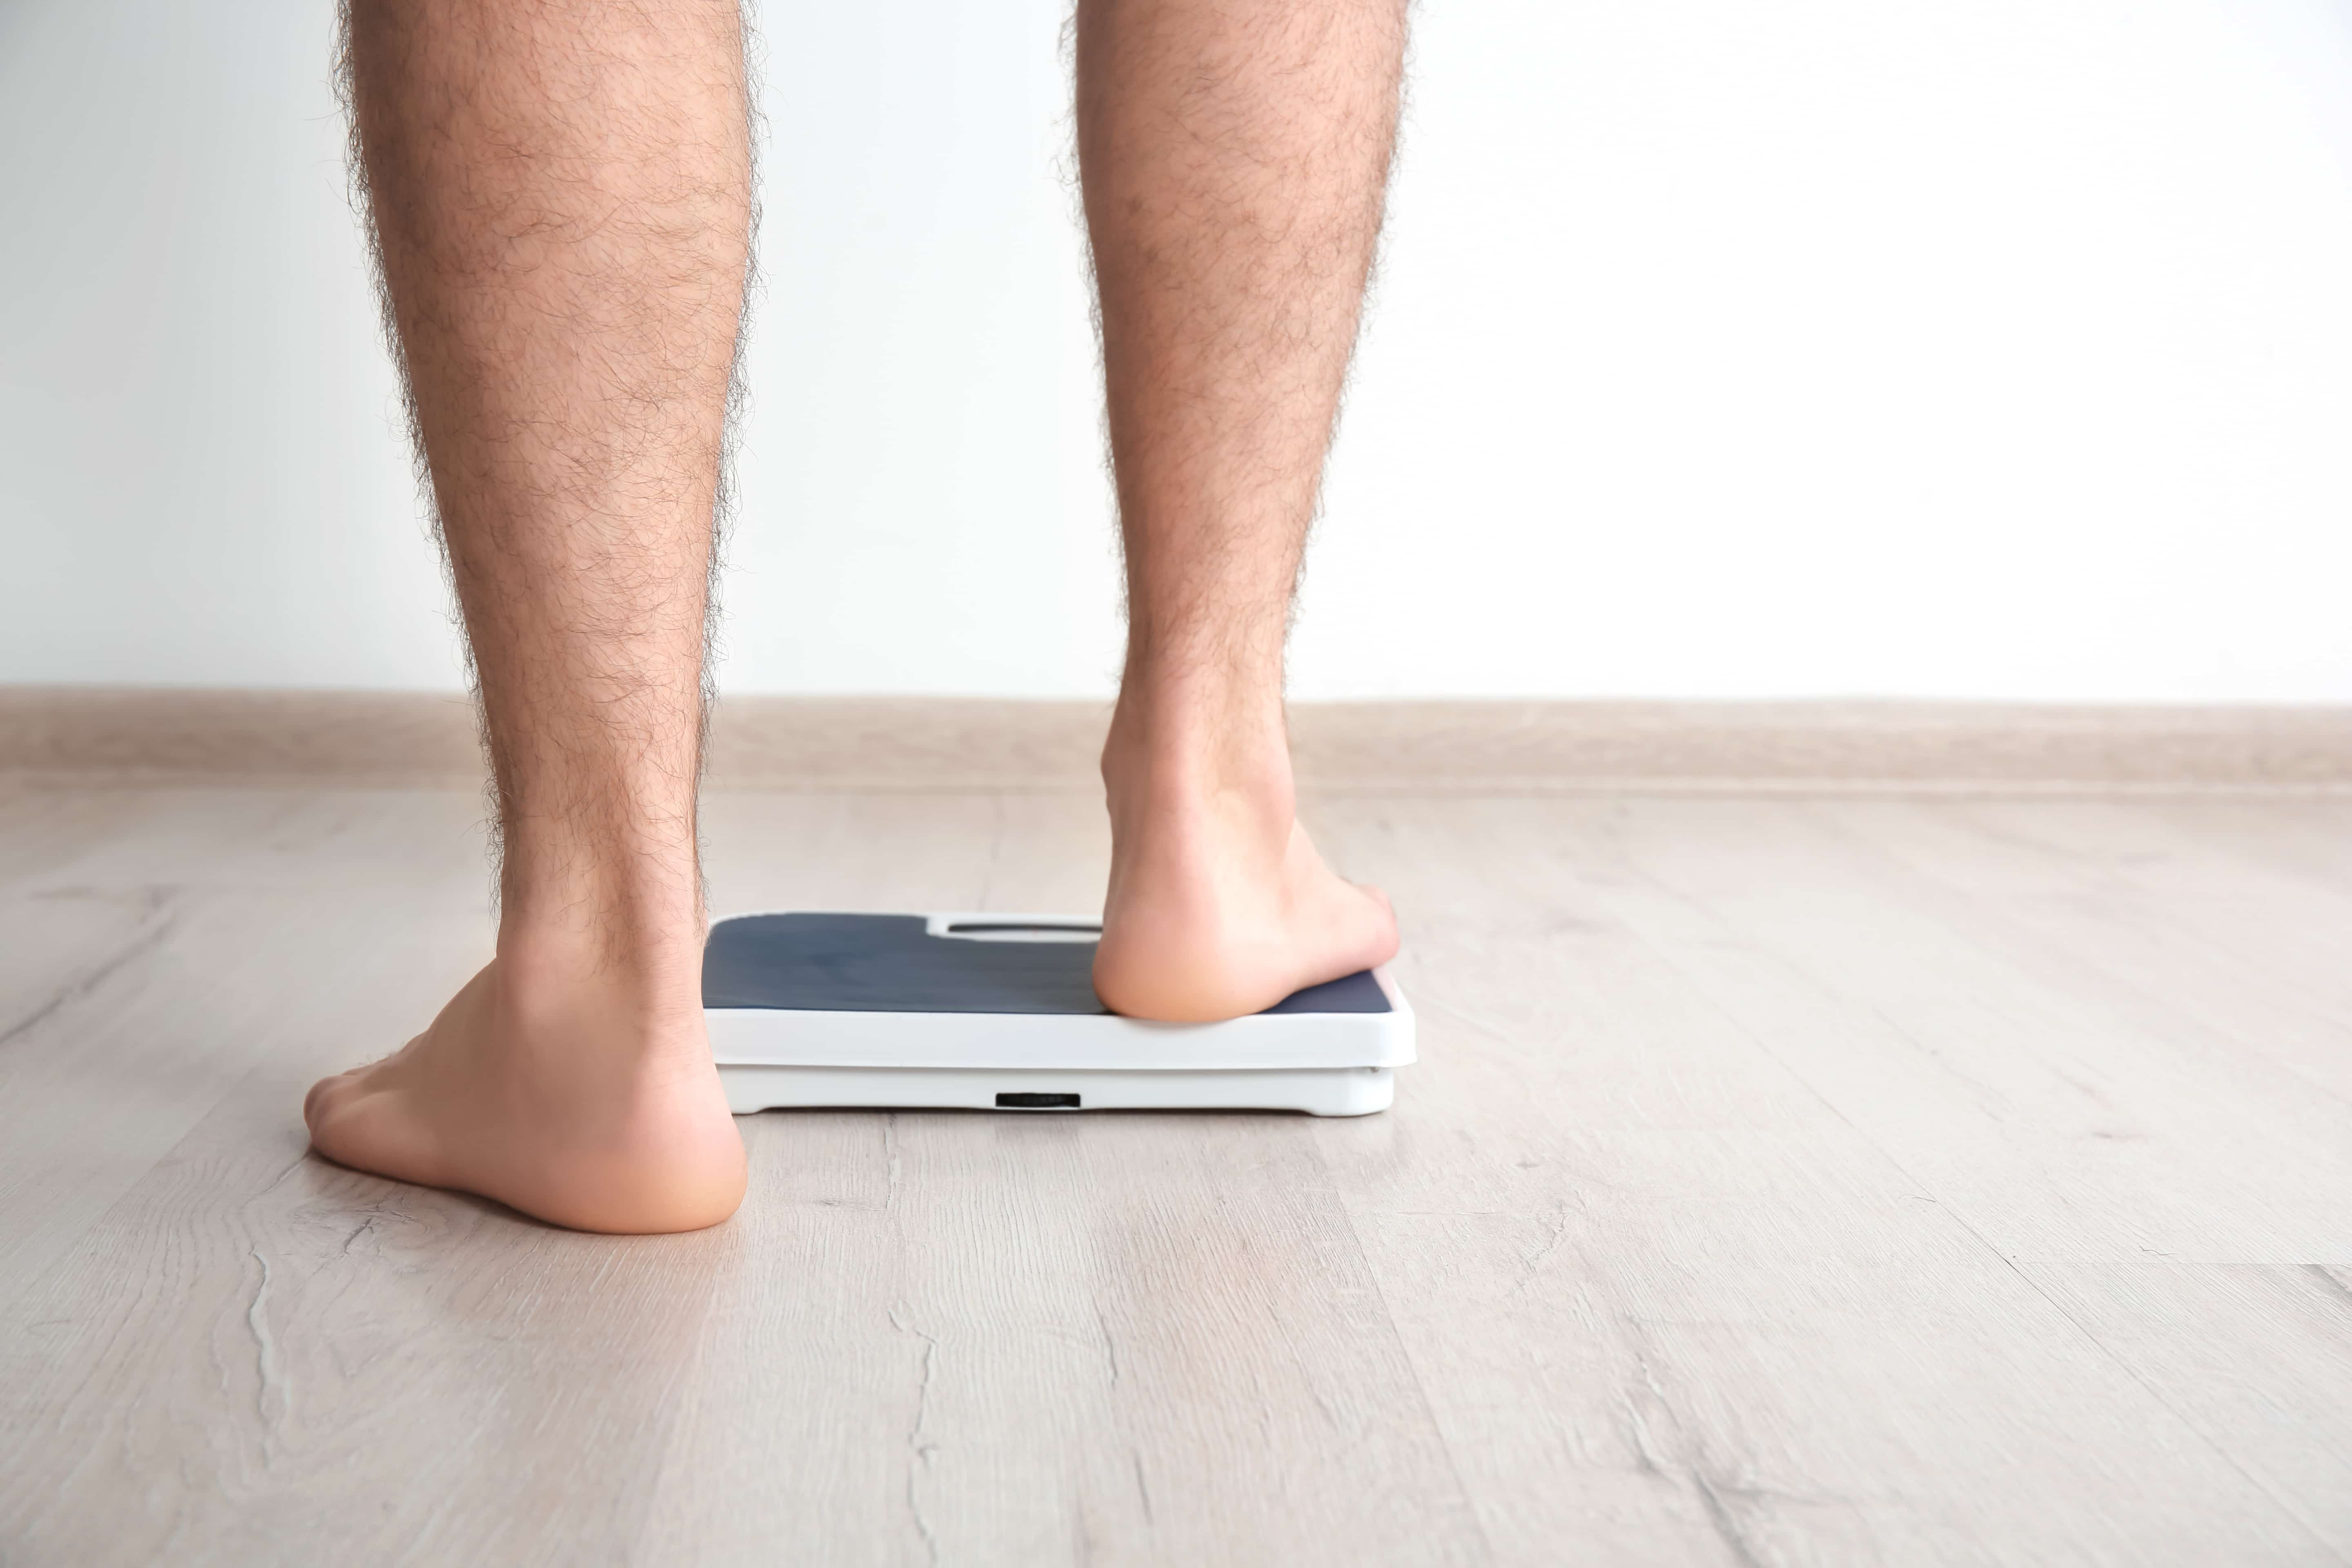 man stepping on scales